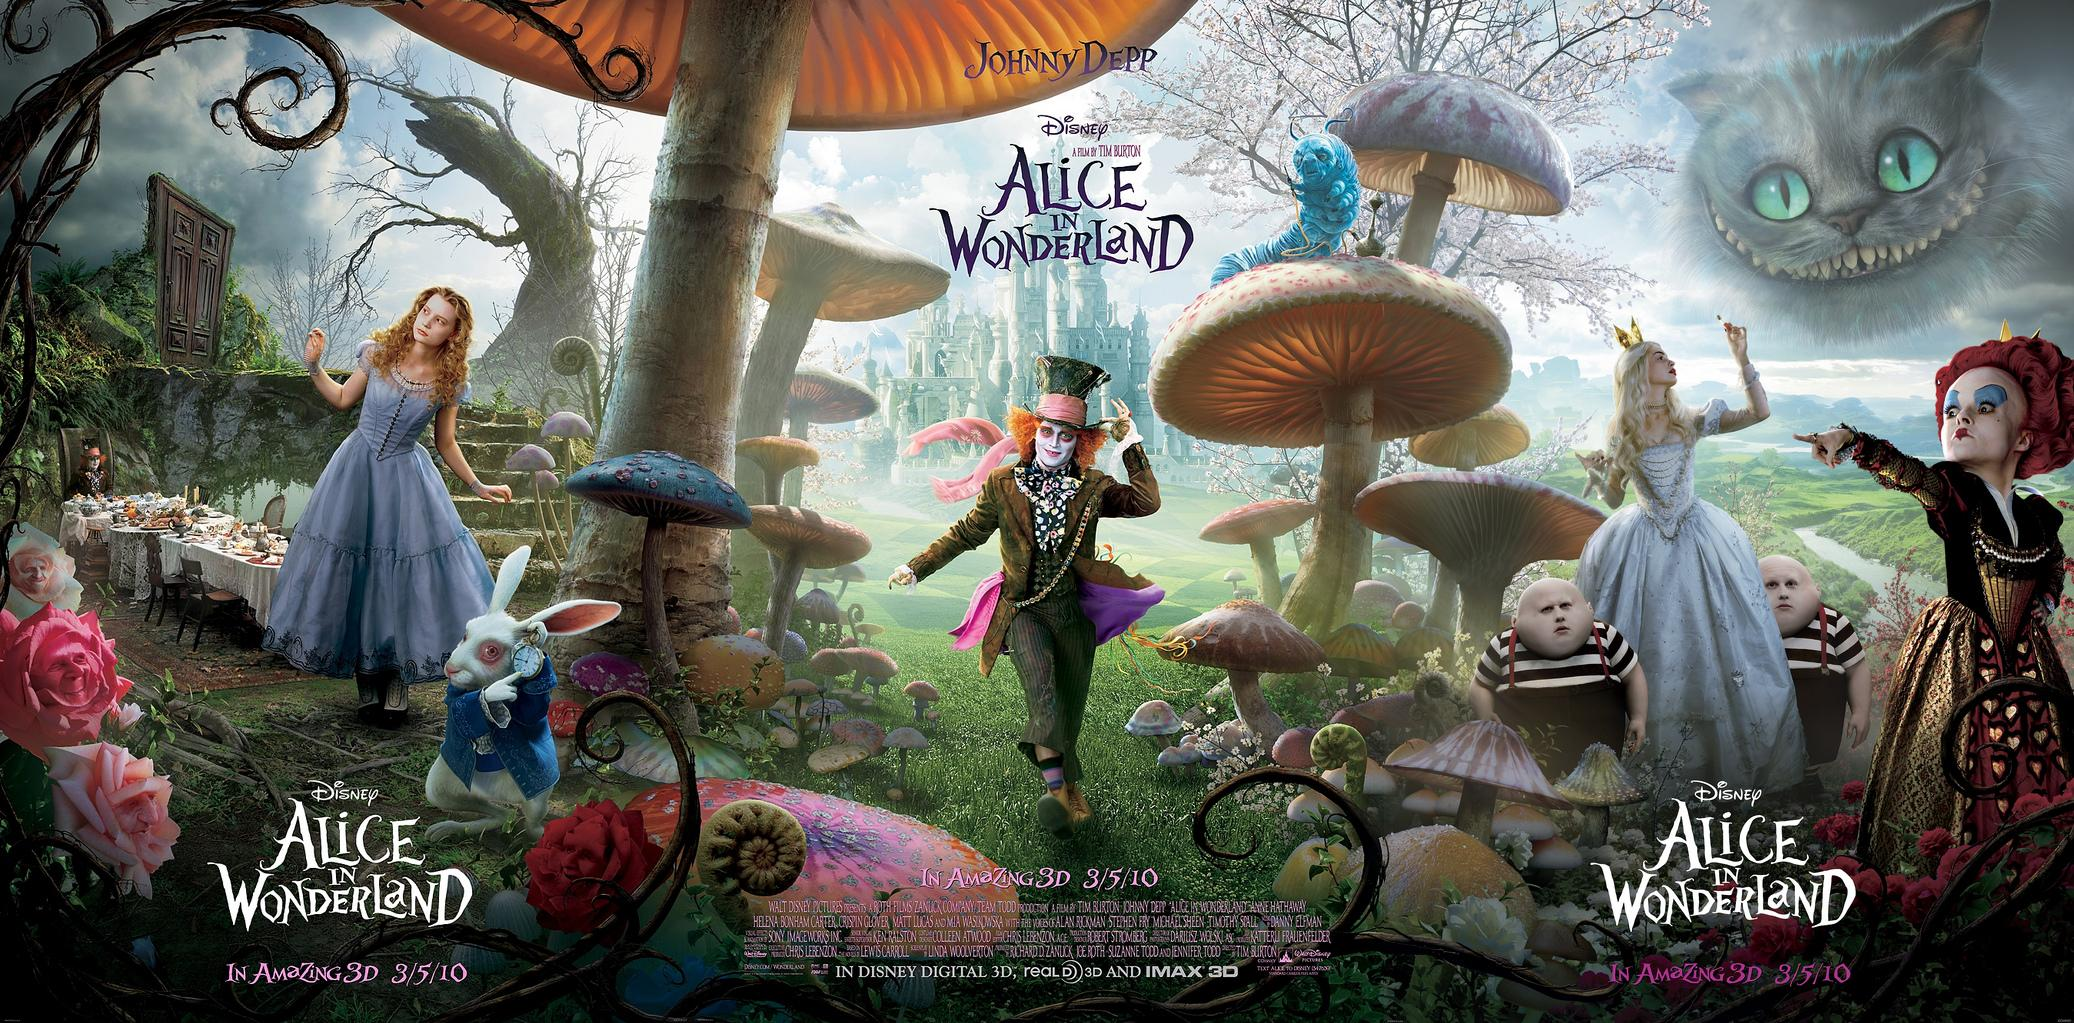 disney alice au pays des merveilles film movie poster affiche in wonderland